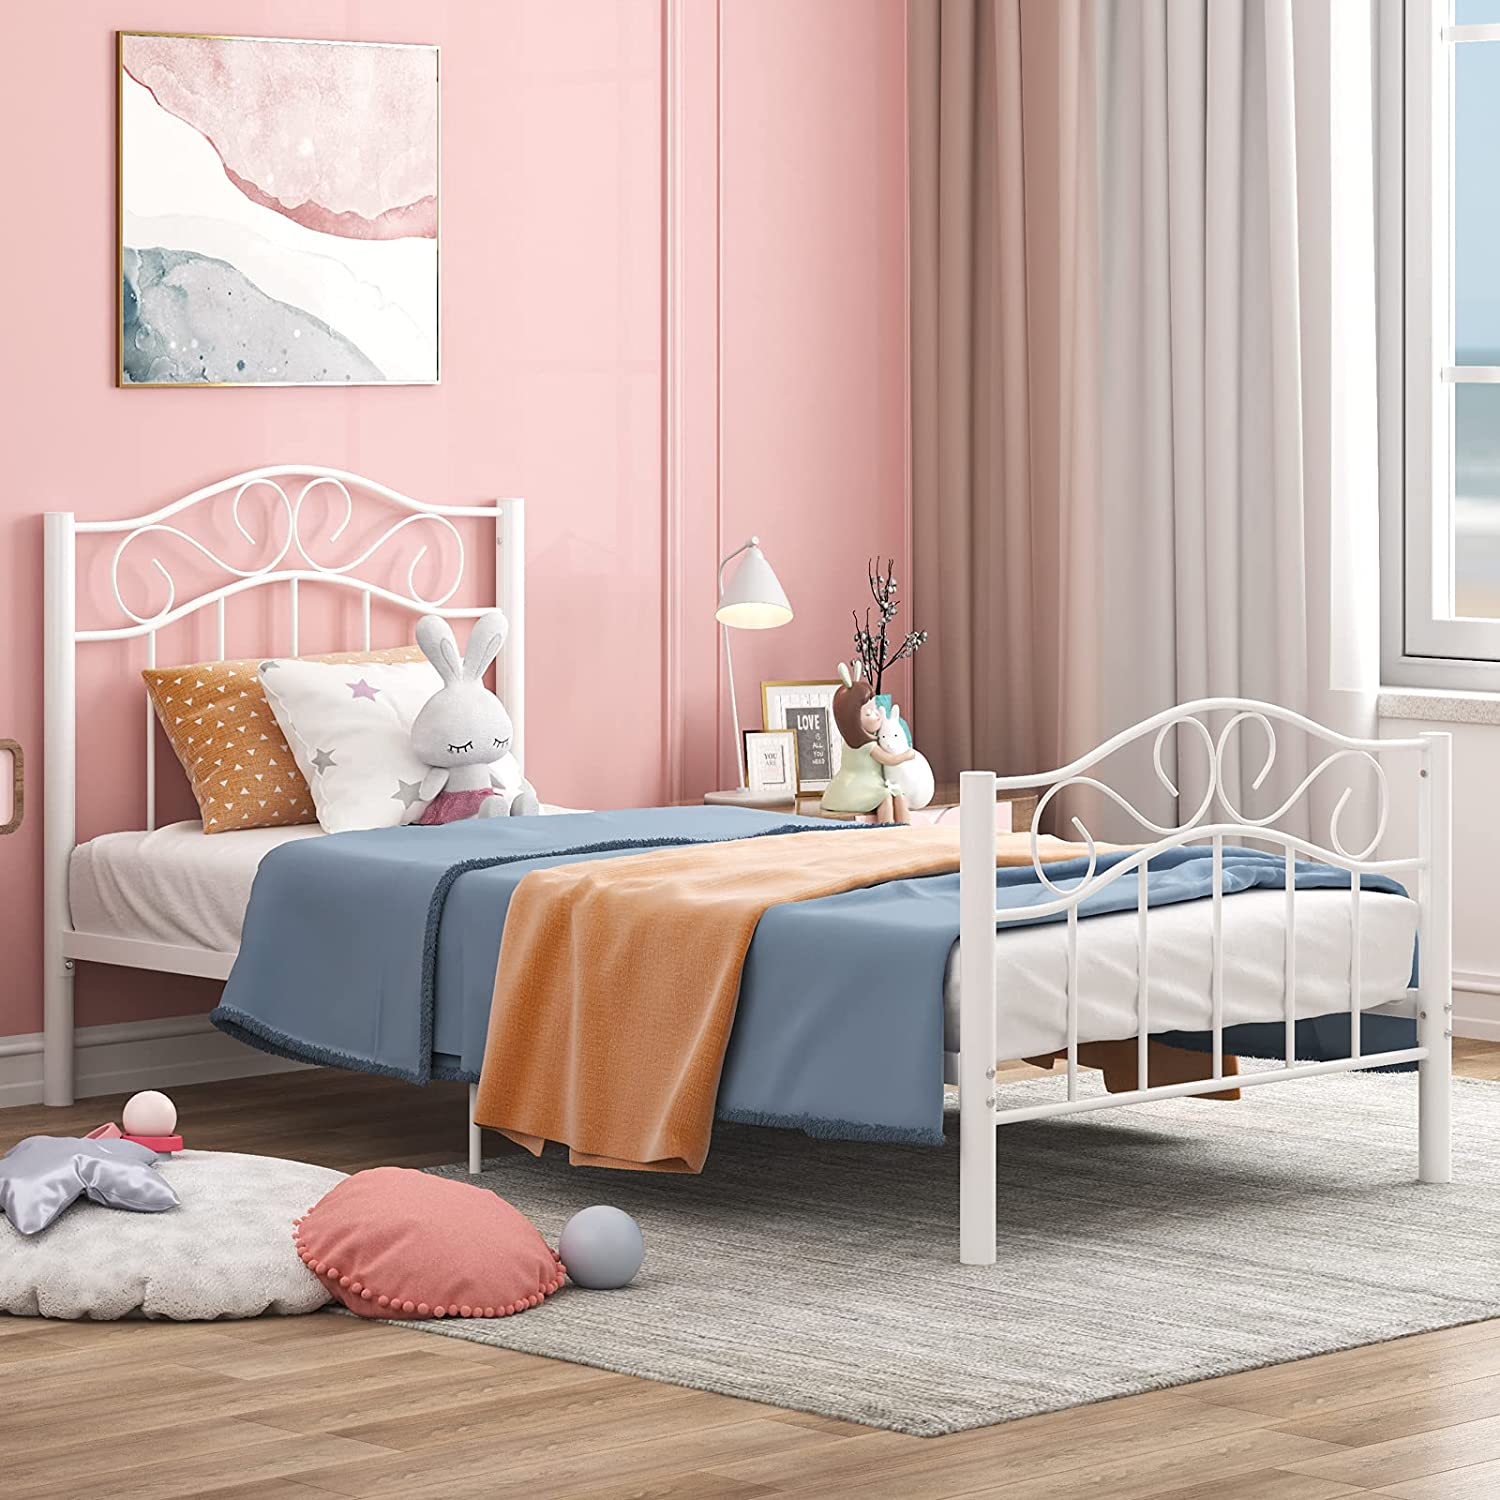 mecor Twin XL Wholesale Curved Metal Bed White Platform Princess - Frame At the price B